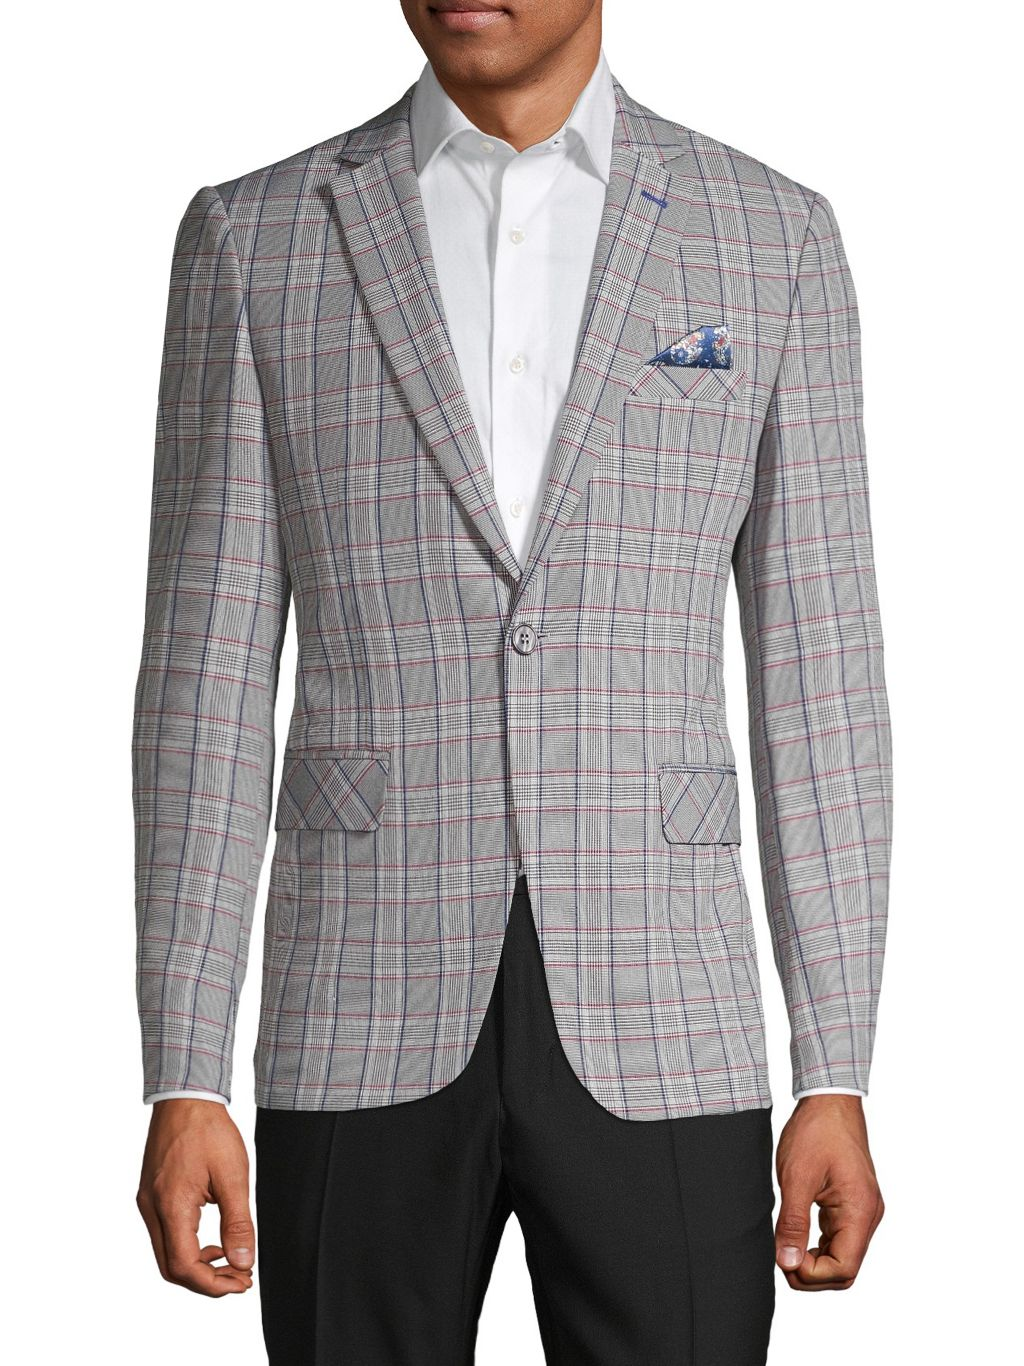 RNT23 Standard-Fit Checkered Sportcoat